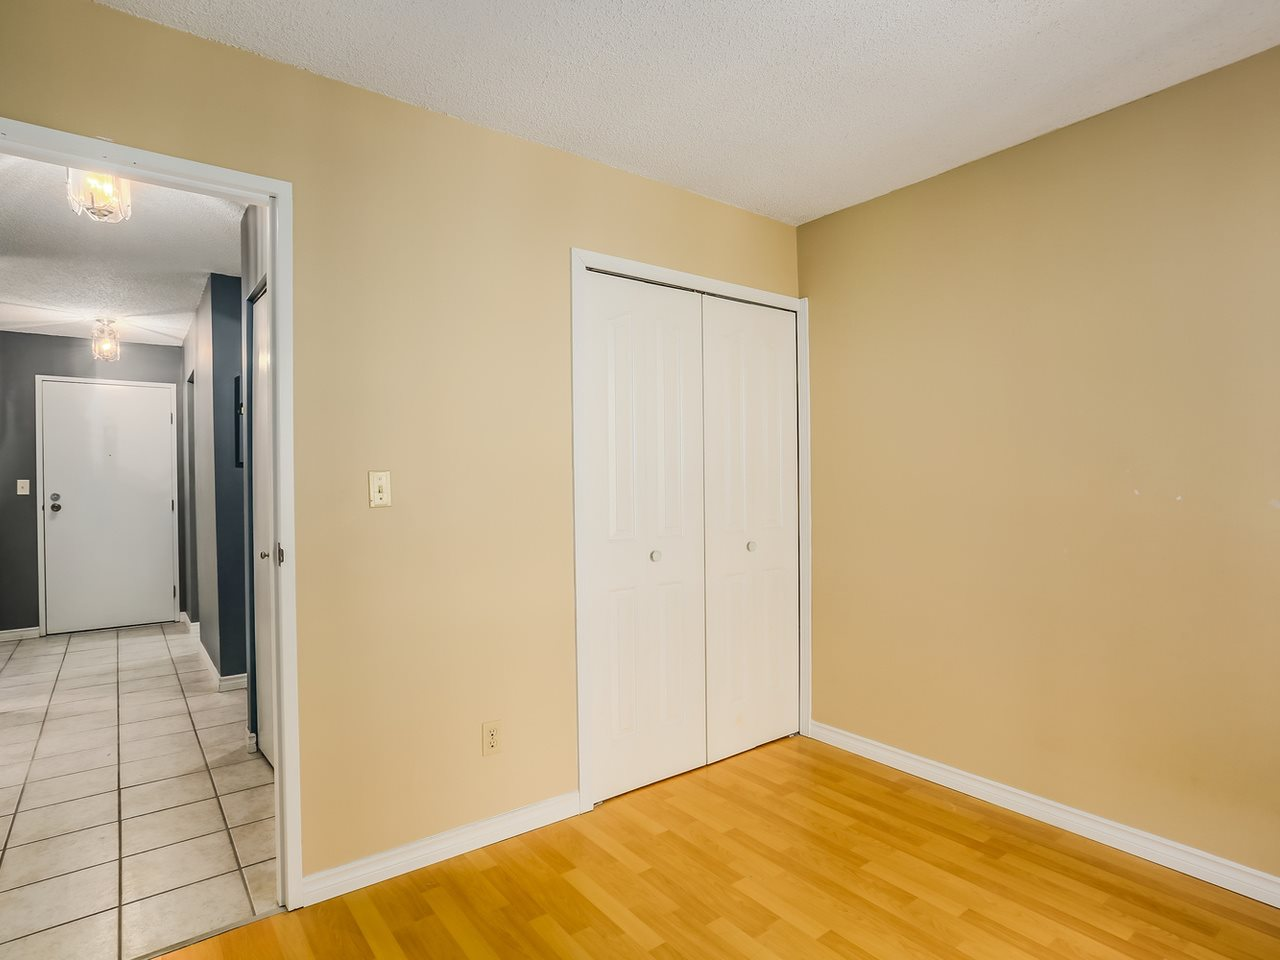 "Photo 10: 313 8760 NO 1 Road in Richmond: Boyd Park Condo for sale in ""APPLE GREENE"" : MLS(r) # R2004968"